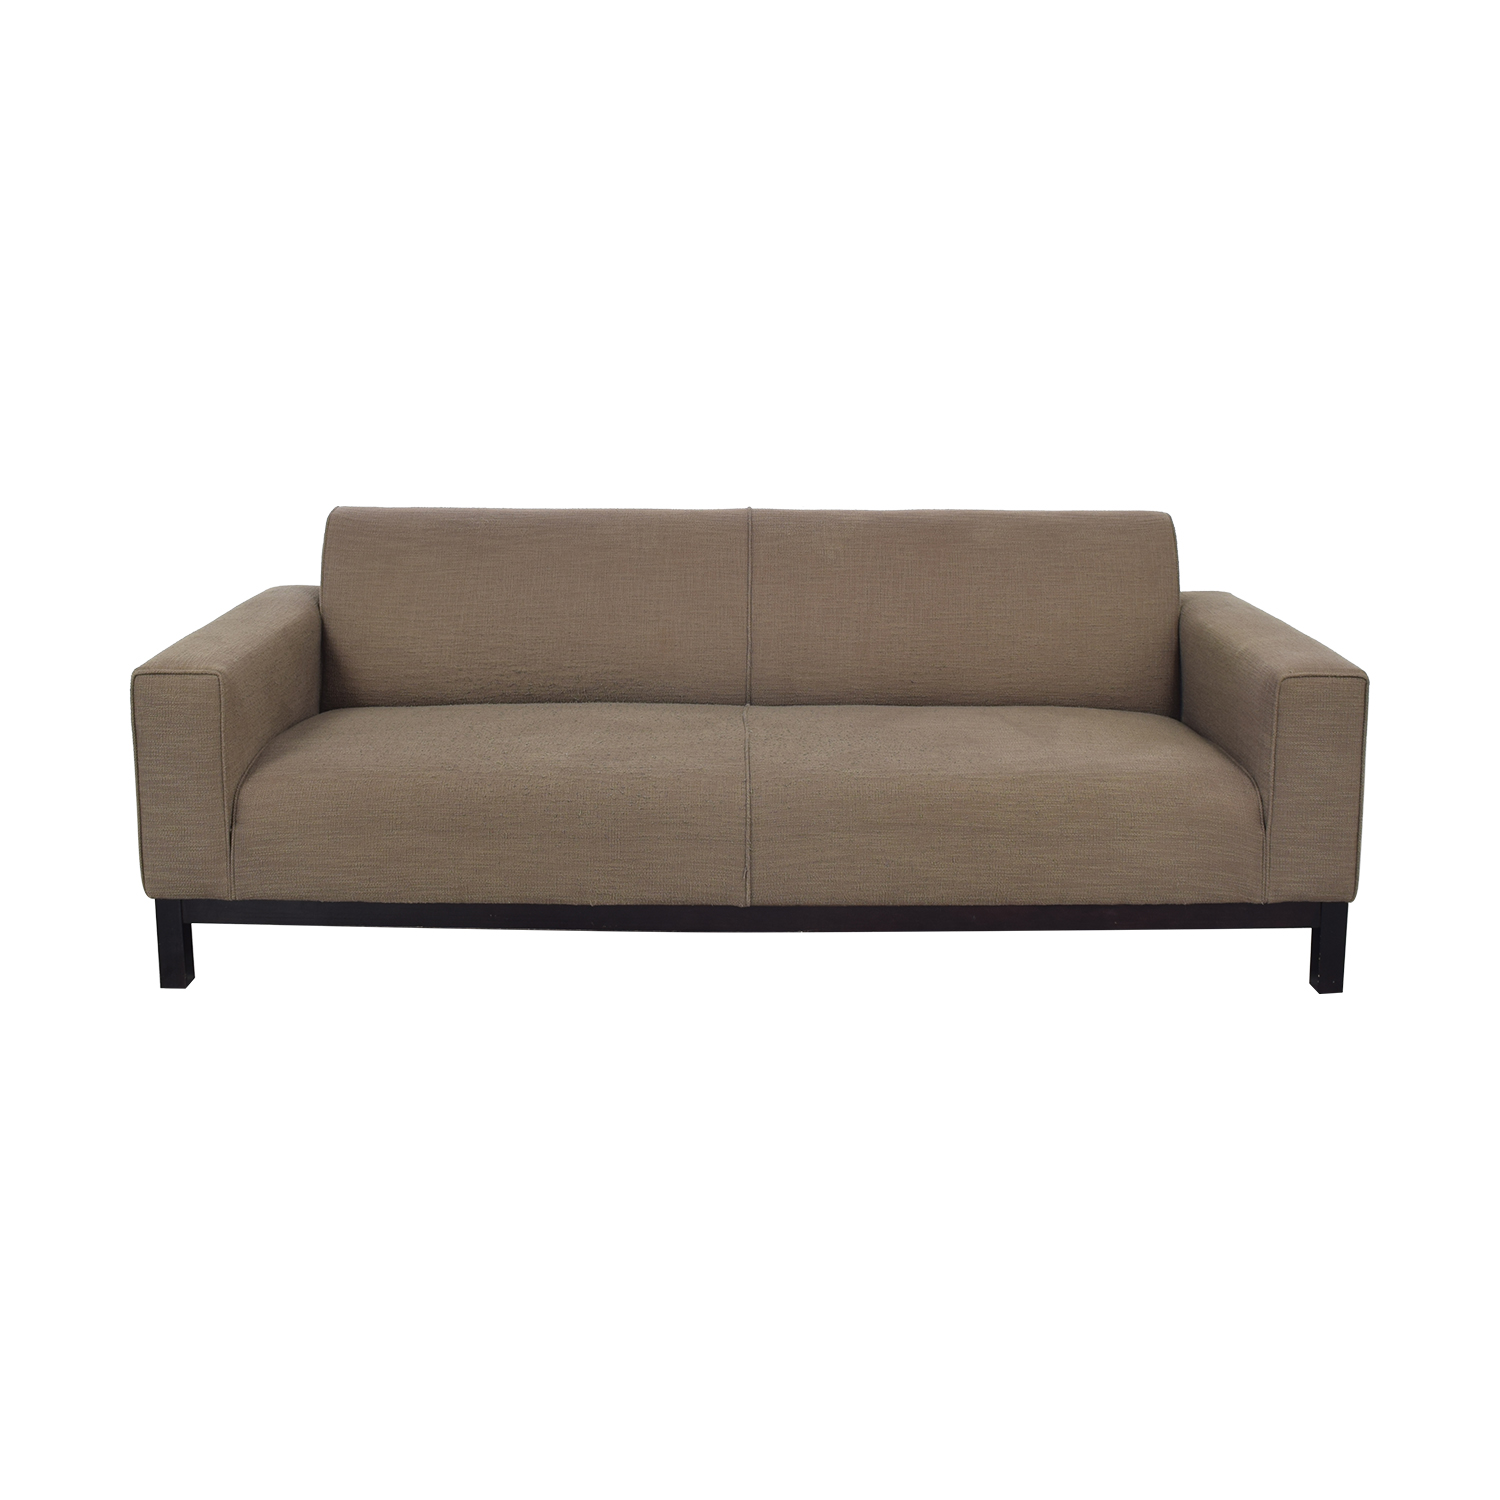 buy Crate & Barrel Tight Back Sofa Crate & Barrel